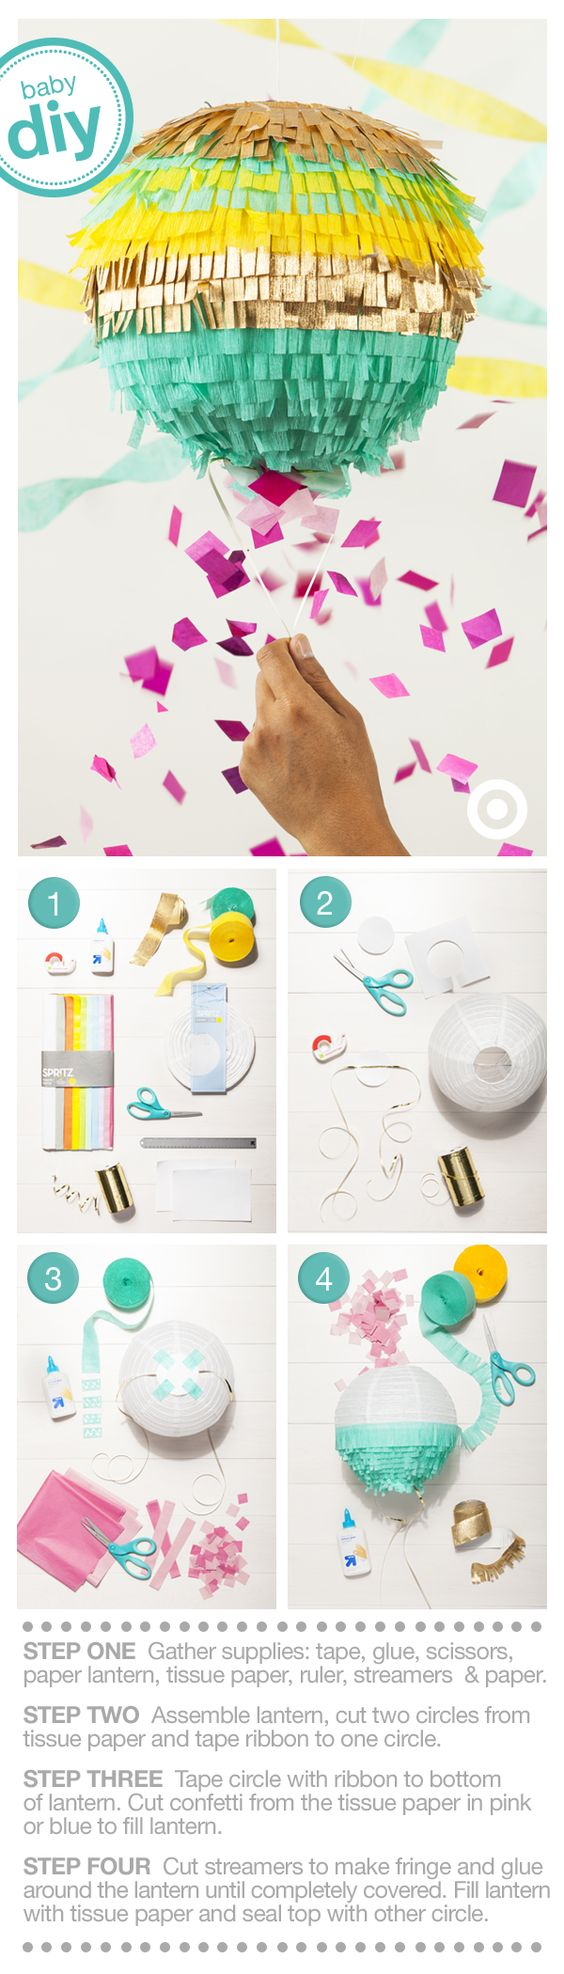 Boy? Girl? Reveal your baby's gender in a unique way with the DIY Gender Reveal Piñata. Gender Reveal parties are becoming more popular; they're also getting more creative. Design your own surprise reveal with this fun piñata. Gather all supplies—Spritz Lantern, tissue paper, ruler, glue, tape, scissors, ruler, streamers and paper. Decorate the lantern in your favorite color and fill it with homemade confetti. Let the surprises begin!